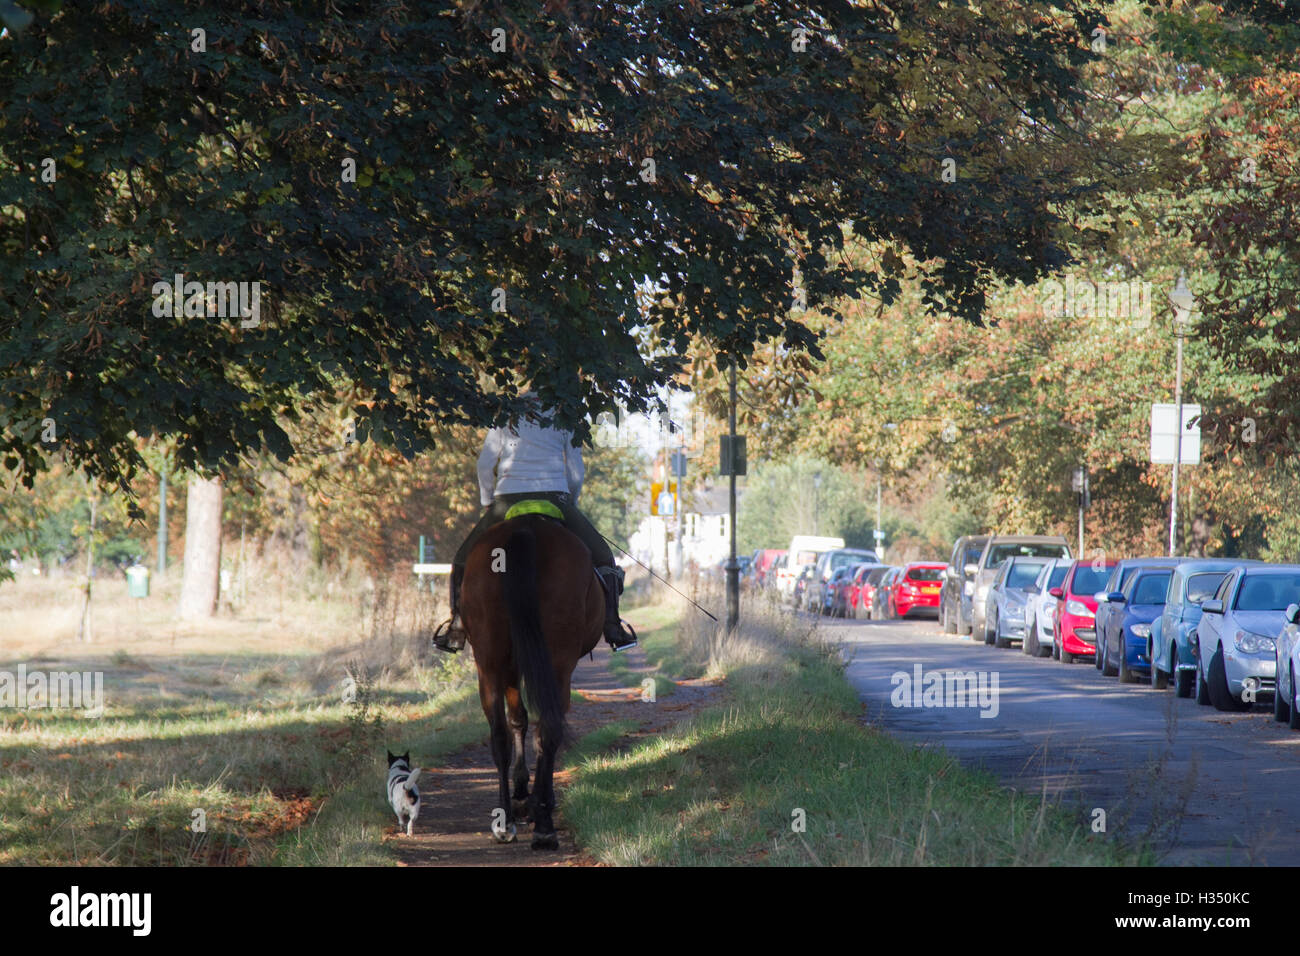 Wimbledon London, UK. 4th October 2016. Horse riders from the Wimbledon stables enjoy riding on Wimbledon Common in the  autumn morning sunshine Credit:  amer ghazzal/Alamy Live News Stock Photo